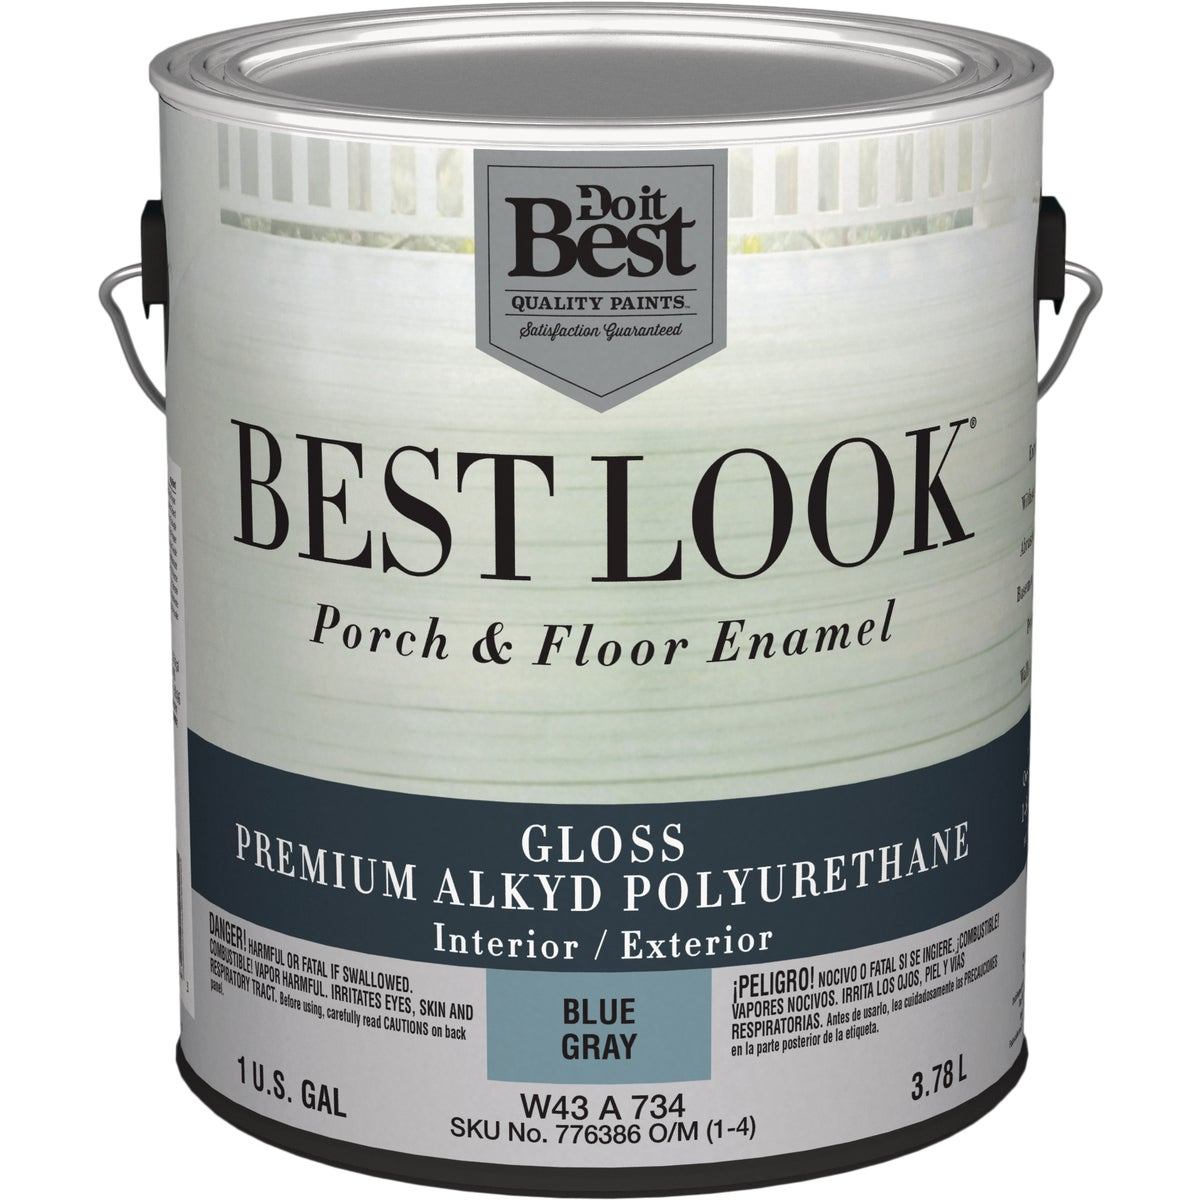 BL GRAY POLY FLOOR PAINT - W43A00734-16 by Do it Best